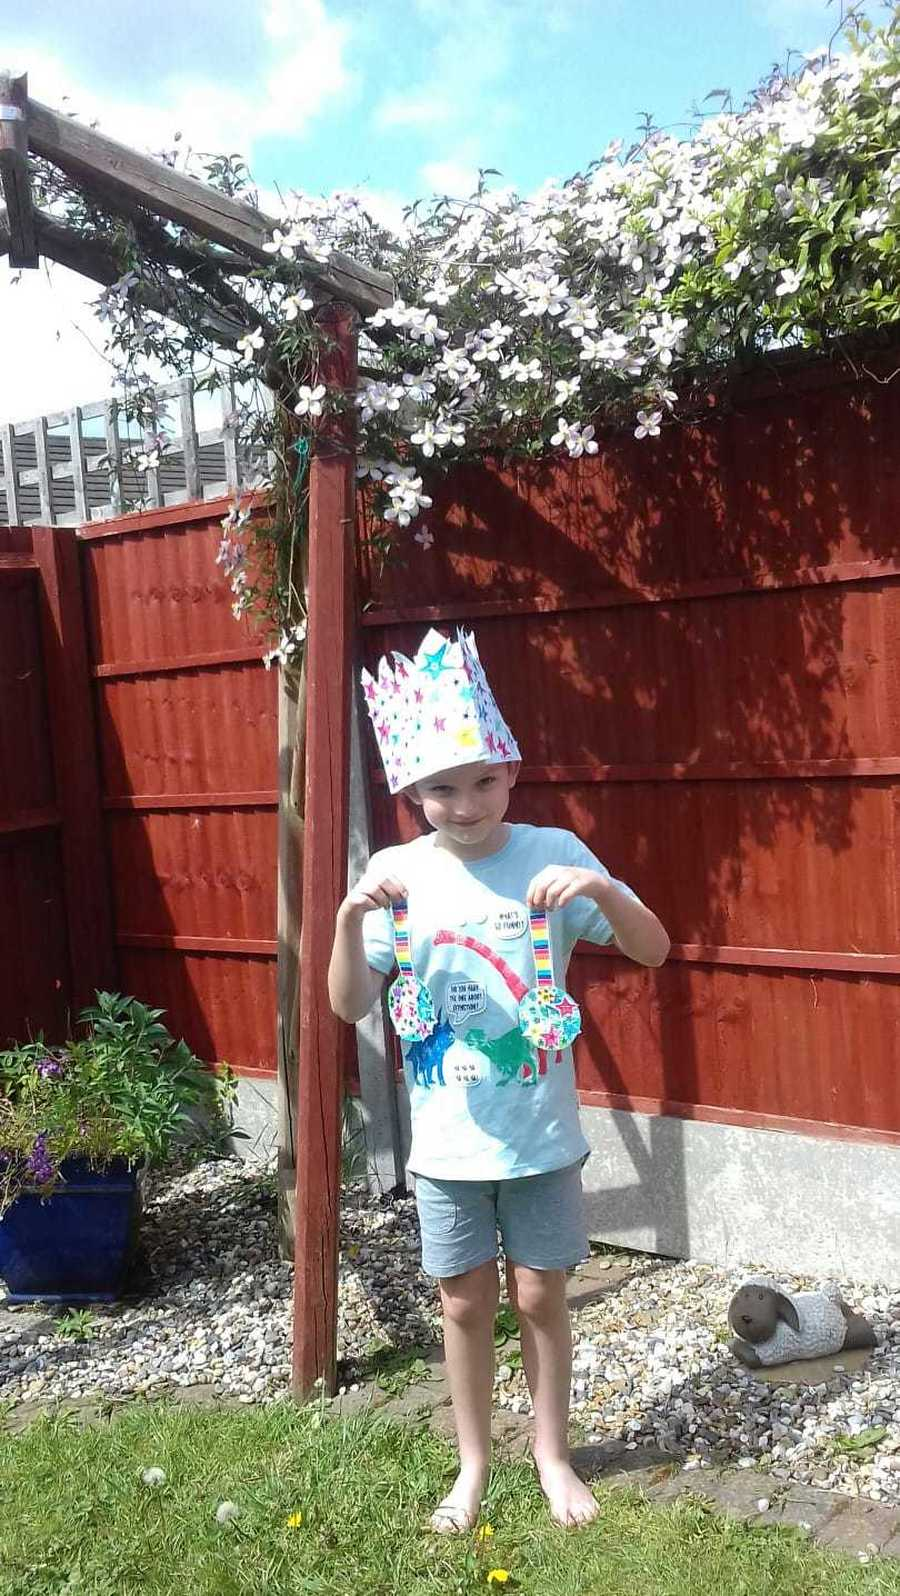 A child in year 4 showing his crown and medals he has created.